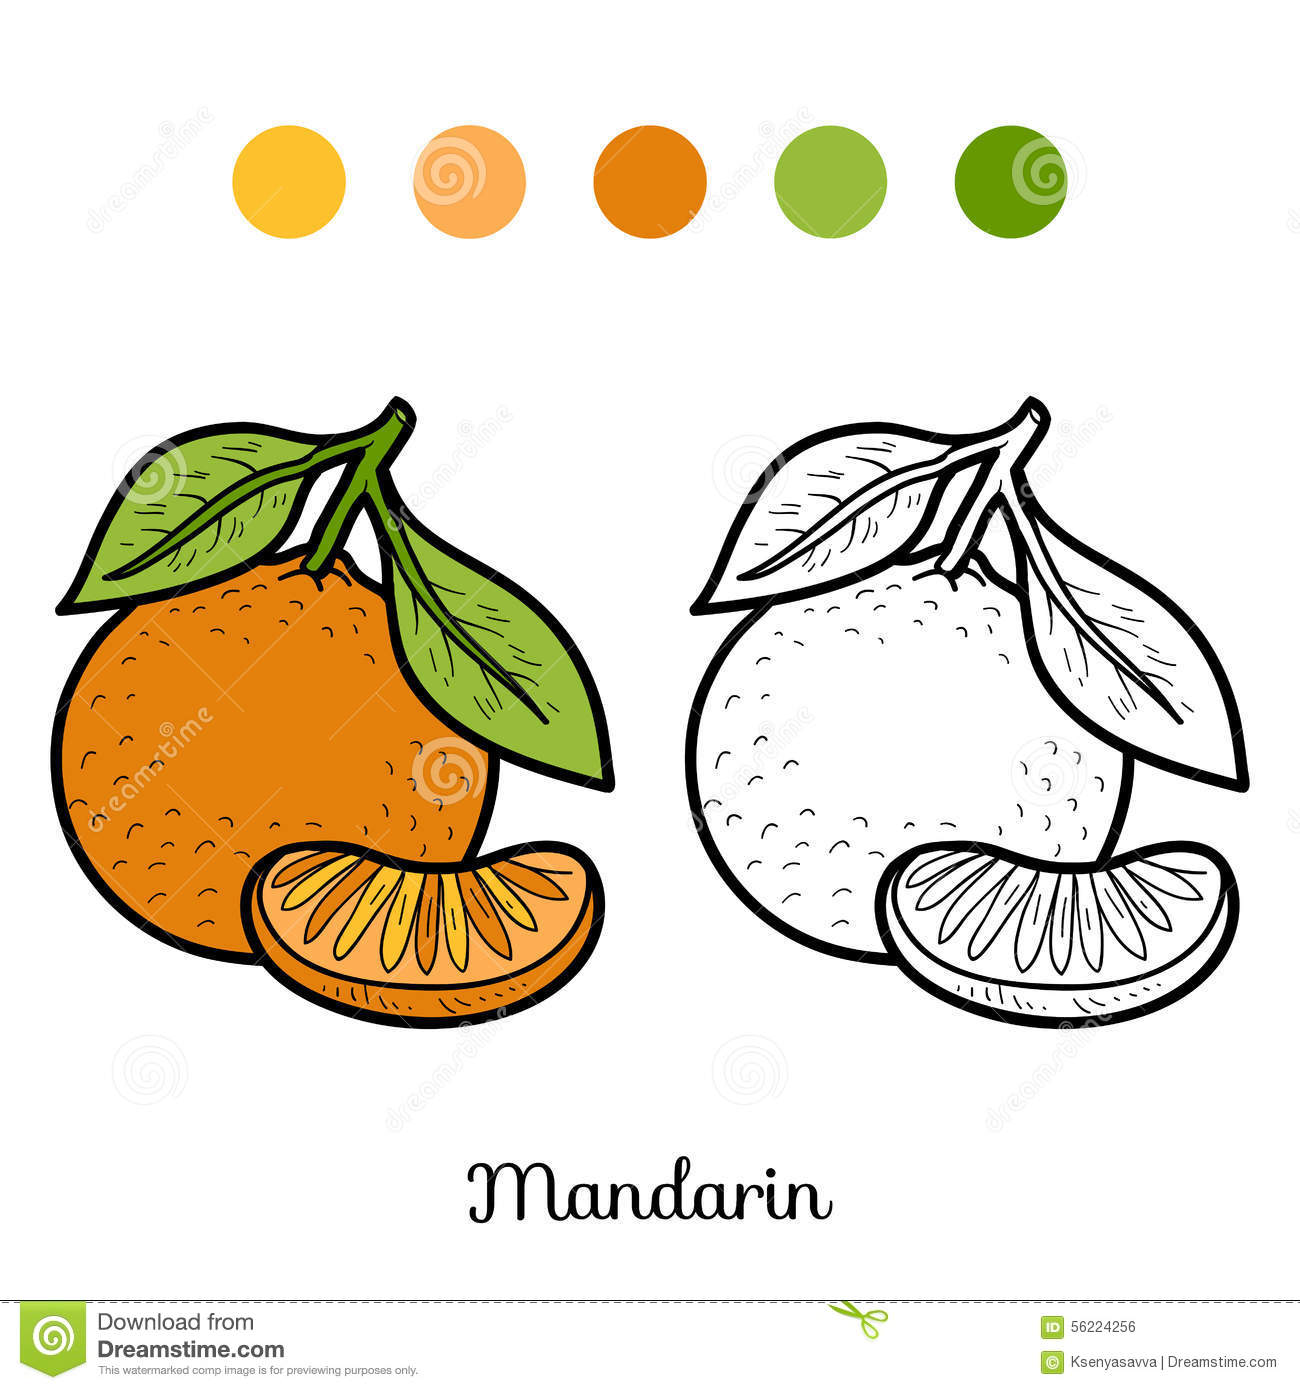 Cahier Coloriage Fruits.Livre De Coloriage Fruits Et Legumes Mandarine Illustration De